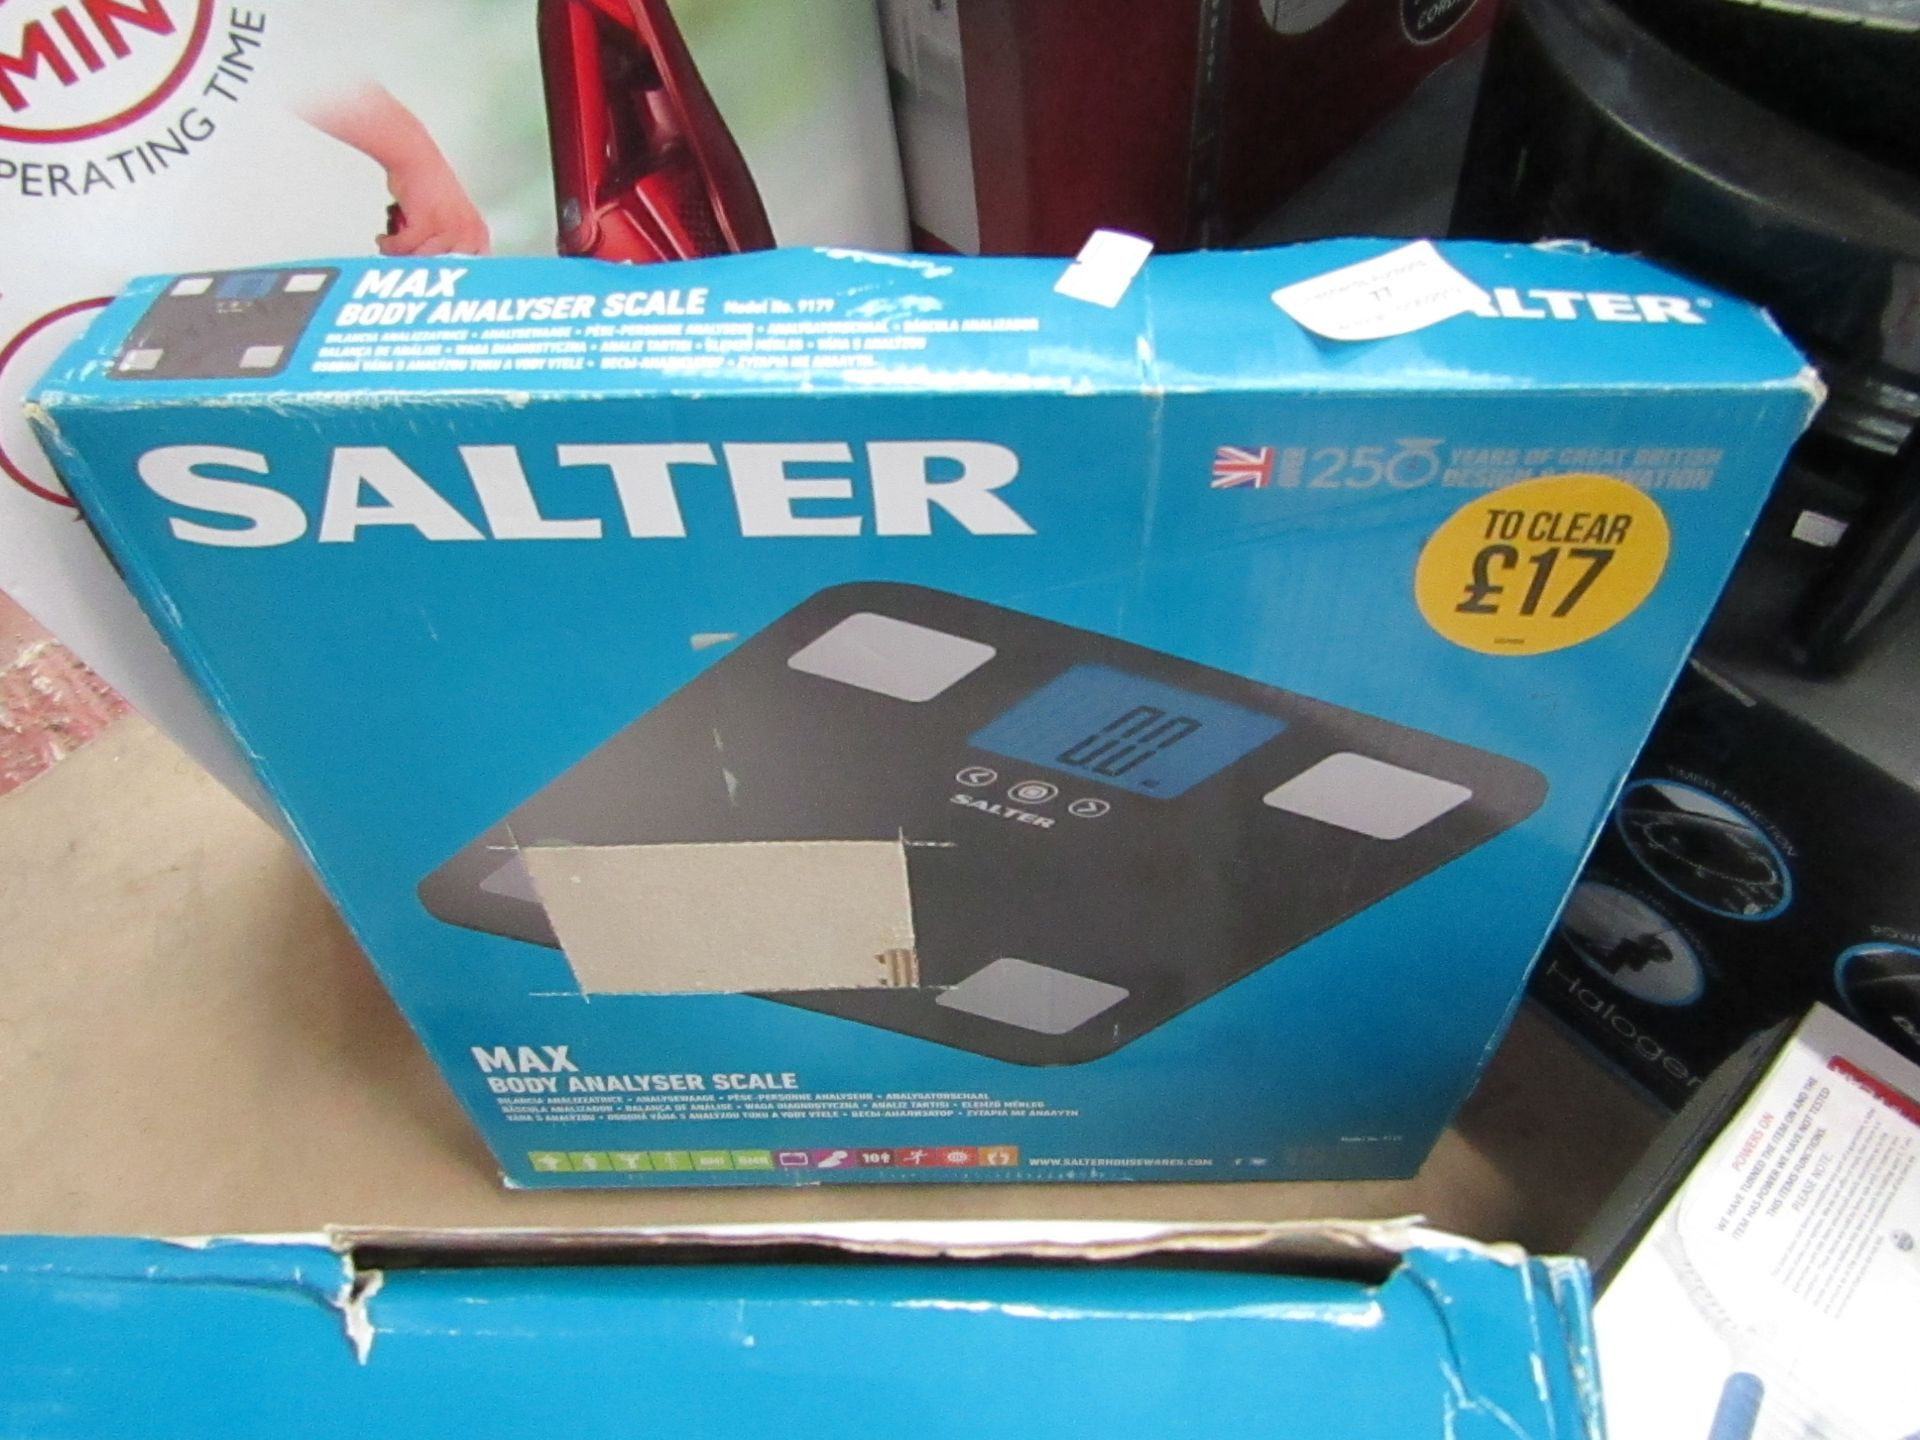 Lot 77 - Salter Max body analyser scales, untested and boxed.